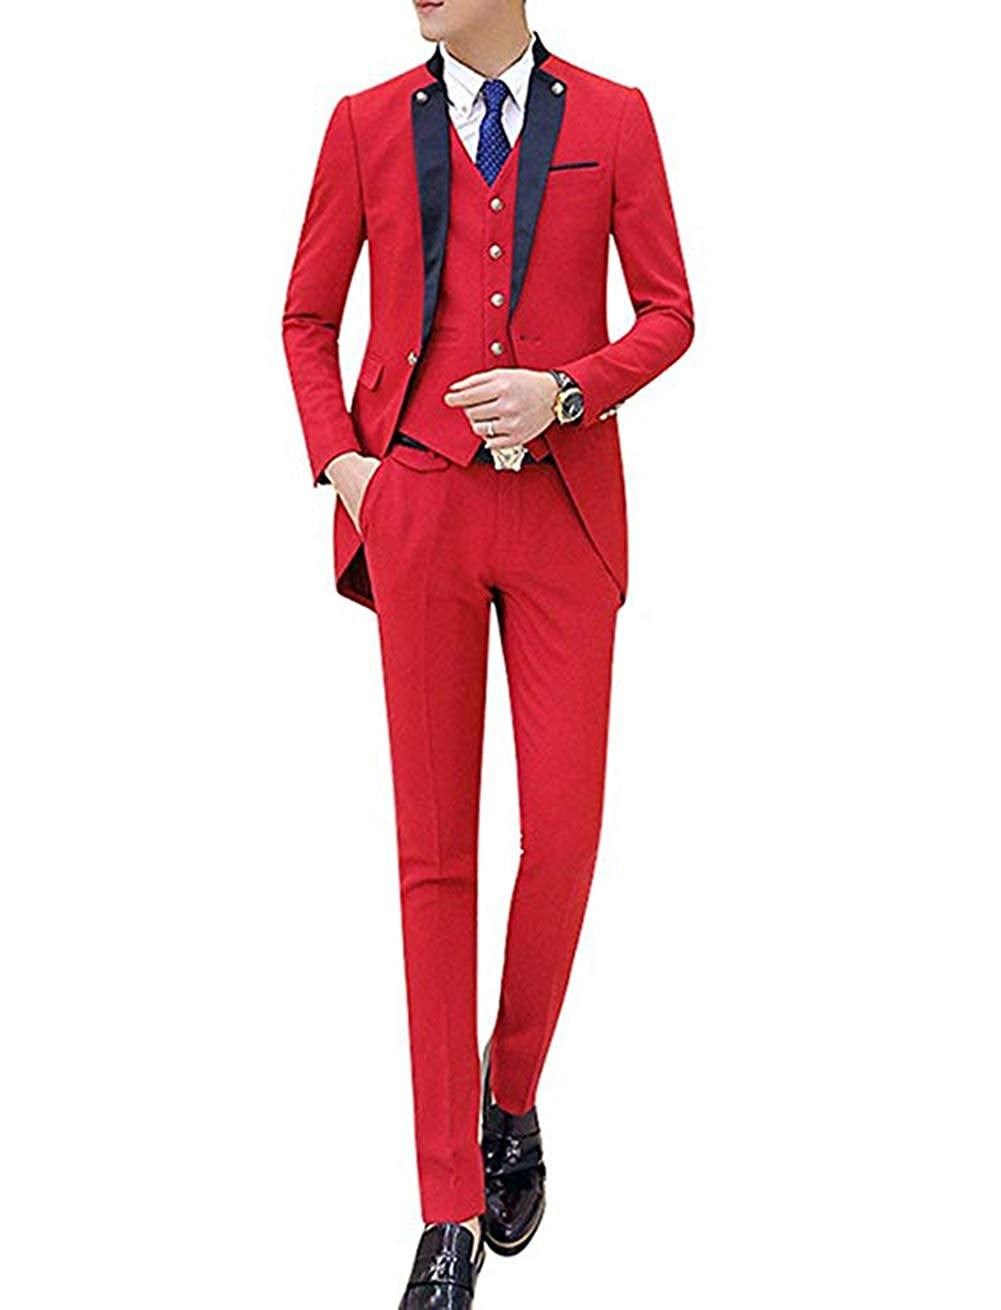 NewStyle Red Suits Jacket for Men 3 Piece Mens Tailcoat ...